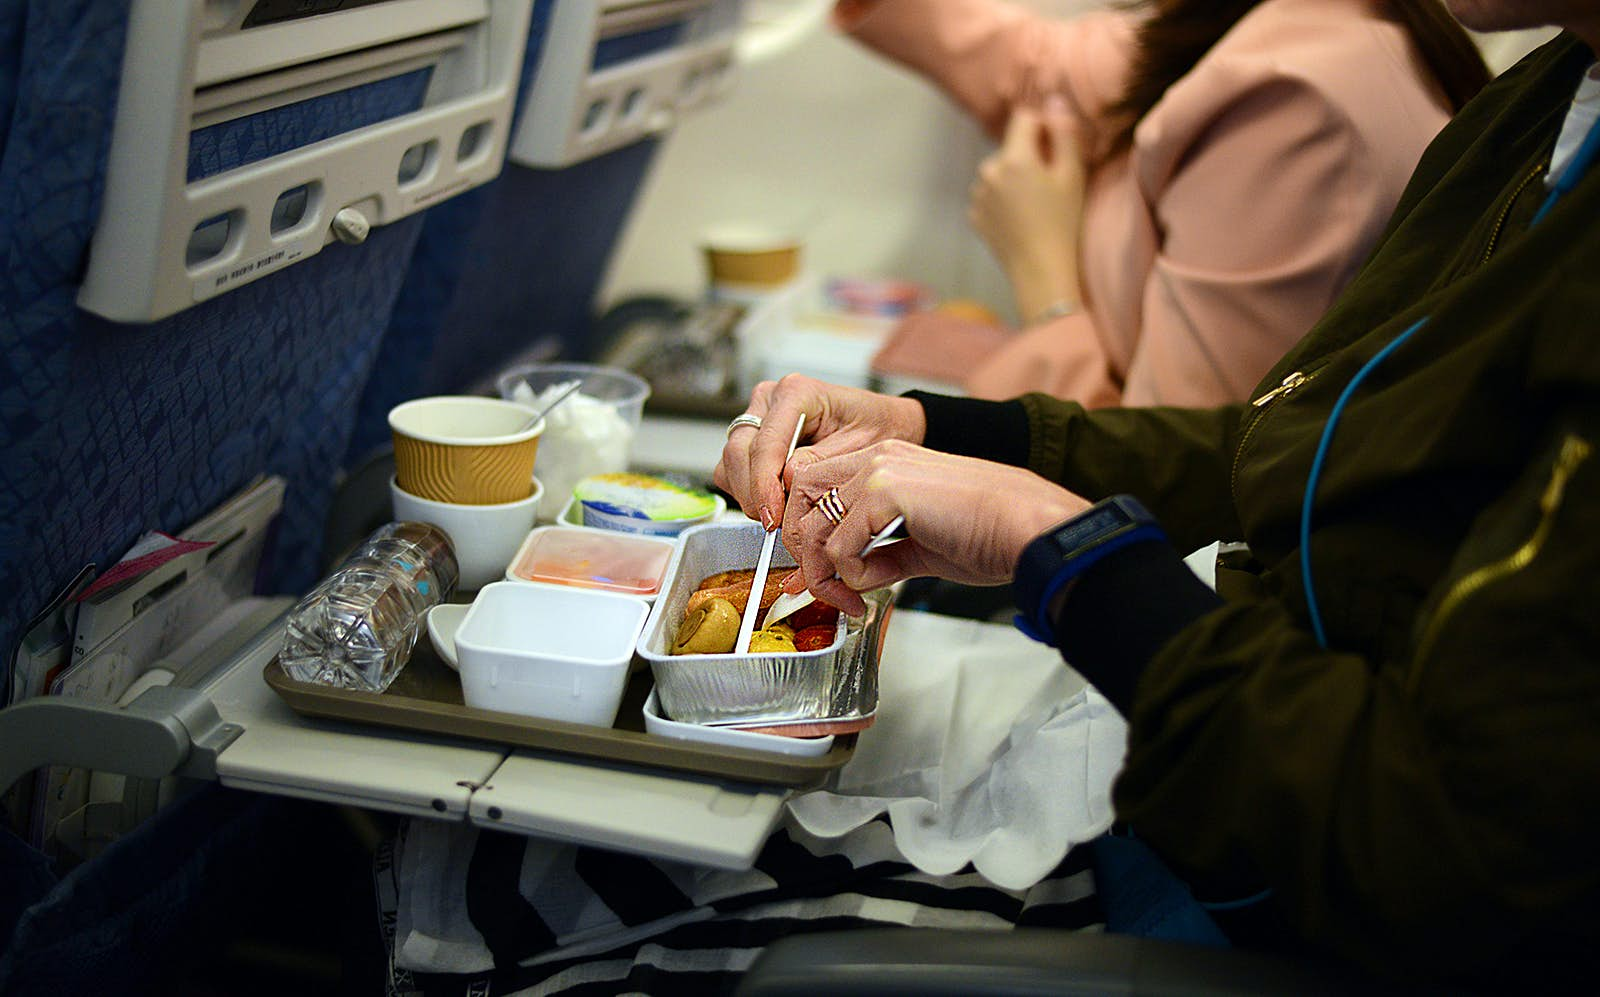 A woman eating an in-flight meal on a plane © Cheryl Chan / Getty Images